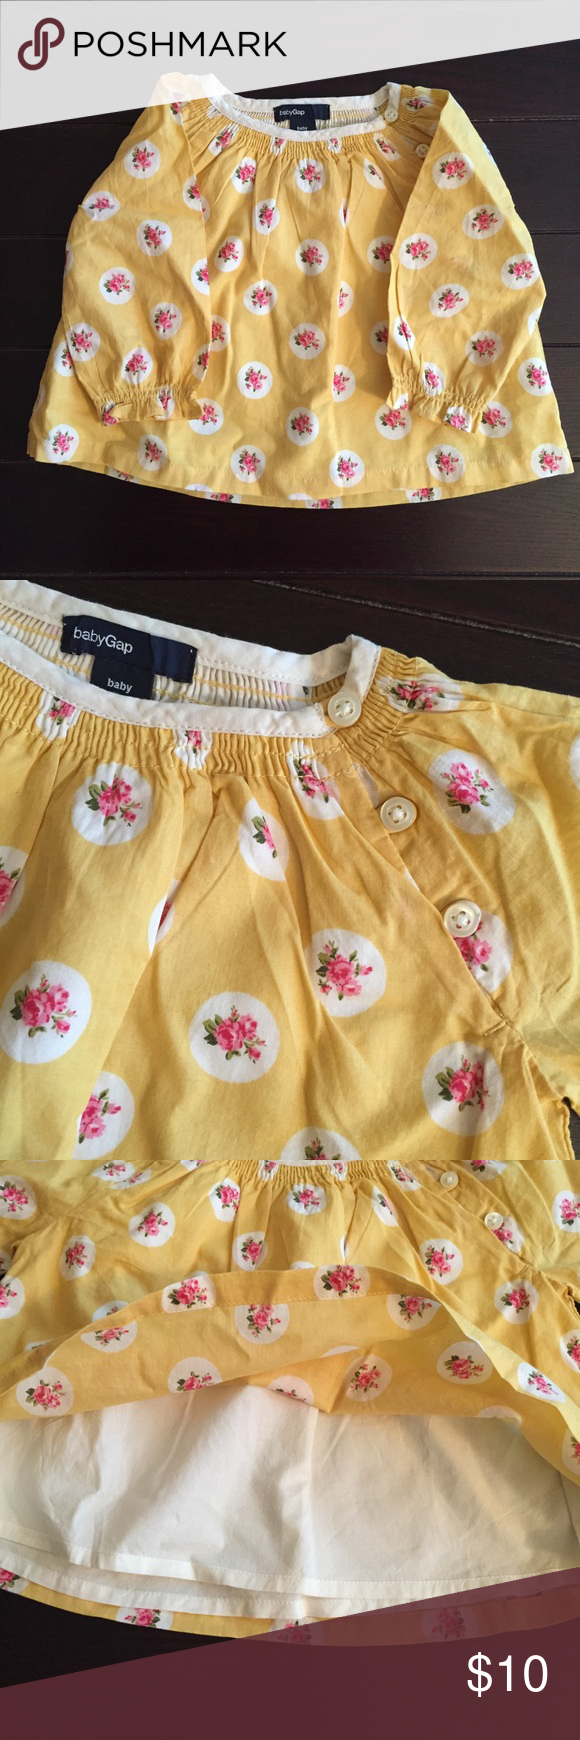 Yellow dress 3-6 months  Baby GAP Infant Swing Top One Piece u Jeans   Gap style